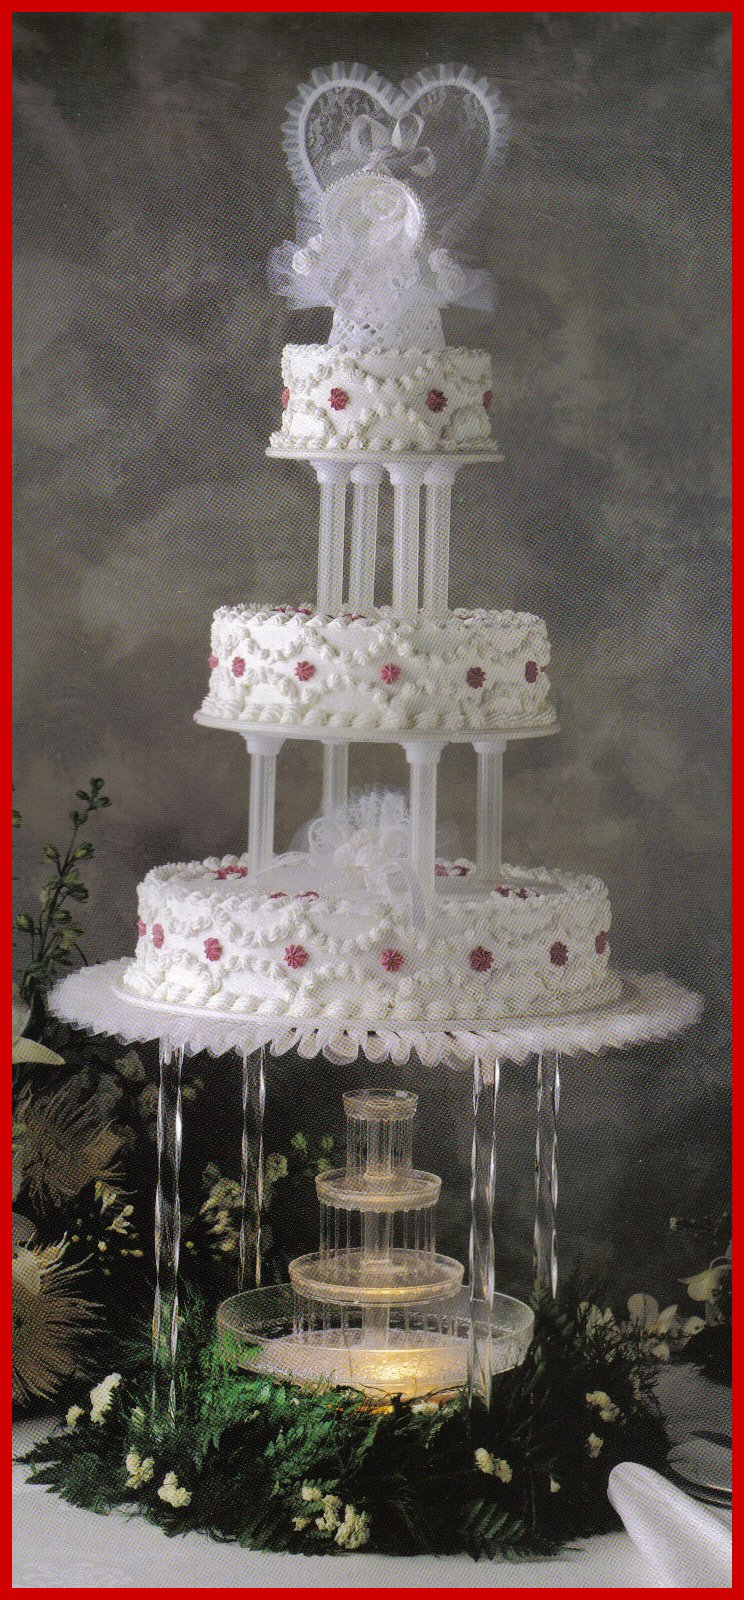 small water fountain for wedding cake of bc 26 cake serves 154 servings with top 20226